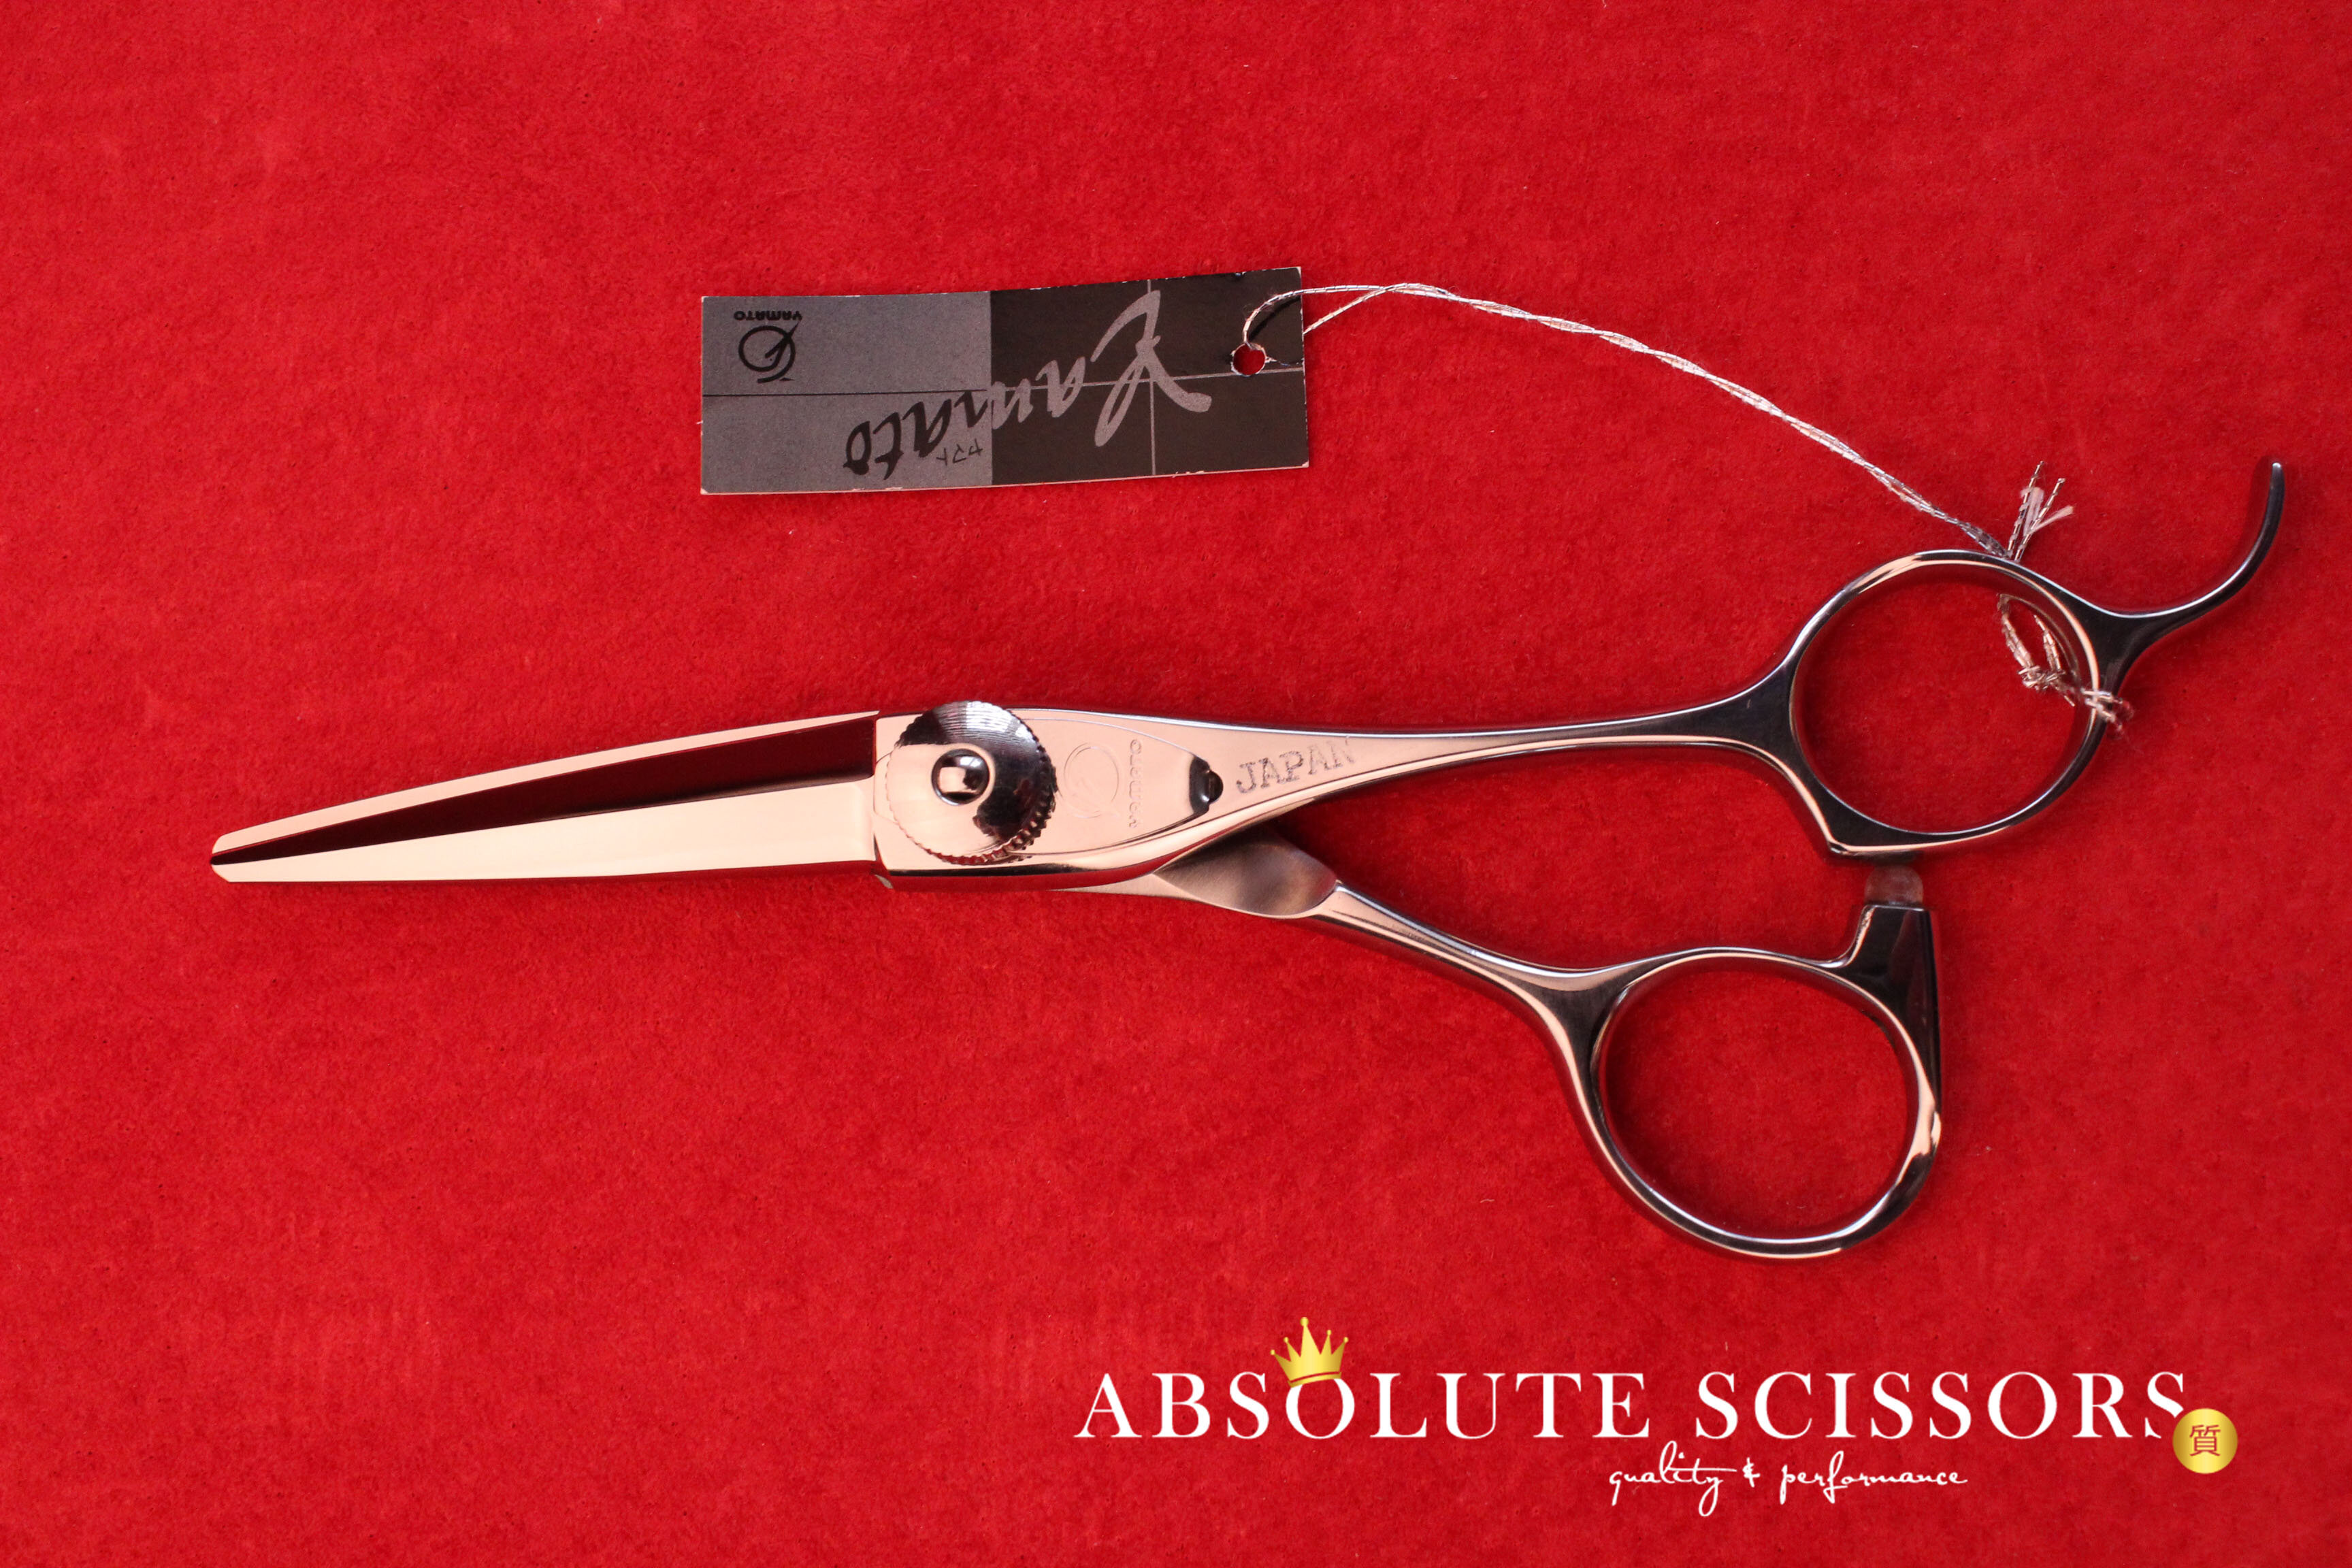 Royal W50 3723 Yamato hair scissors size 5 inches